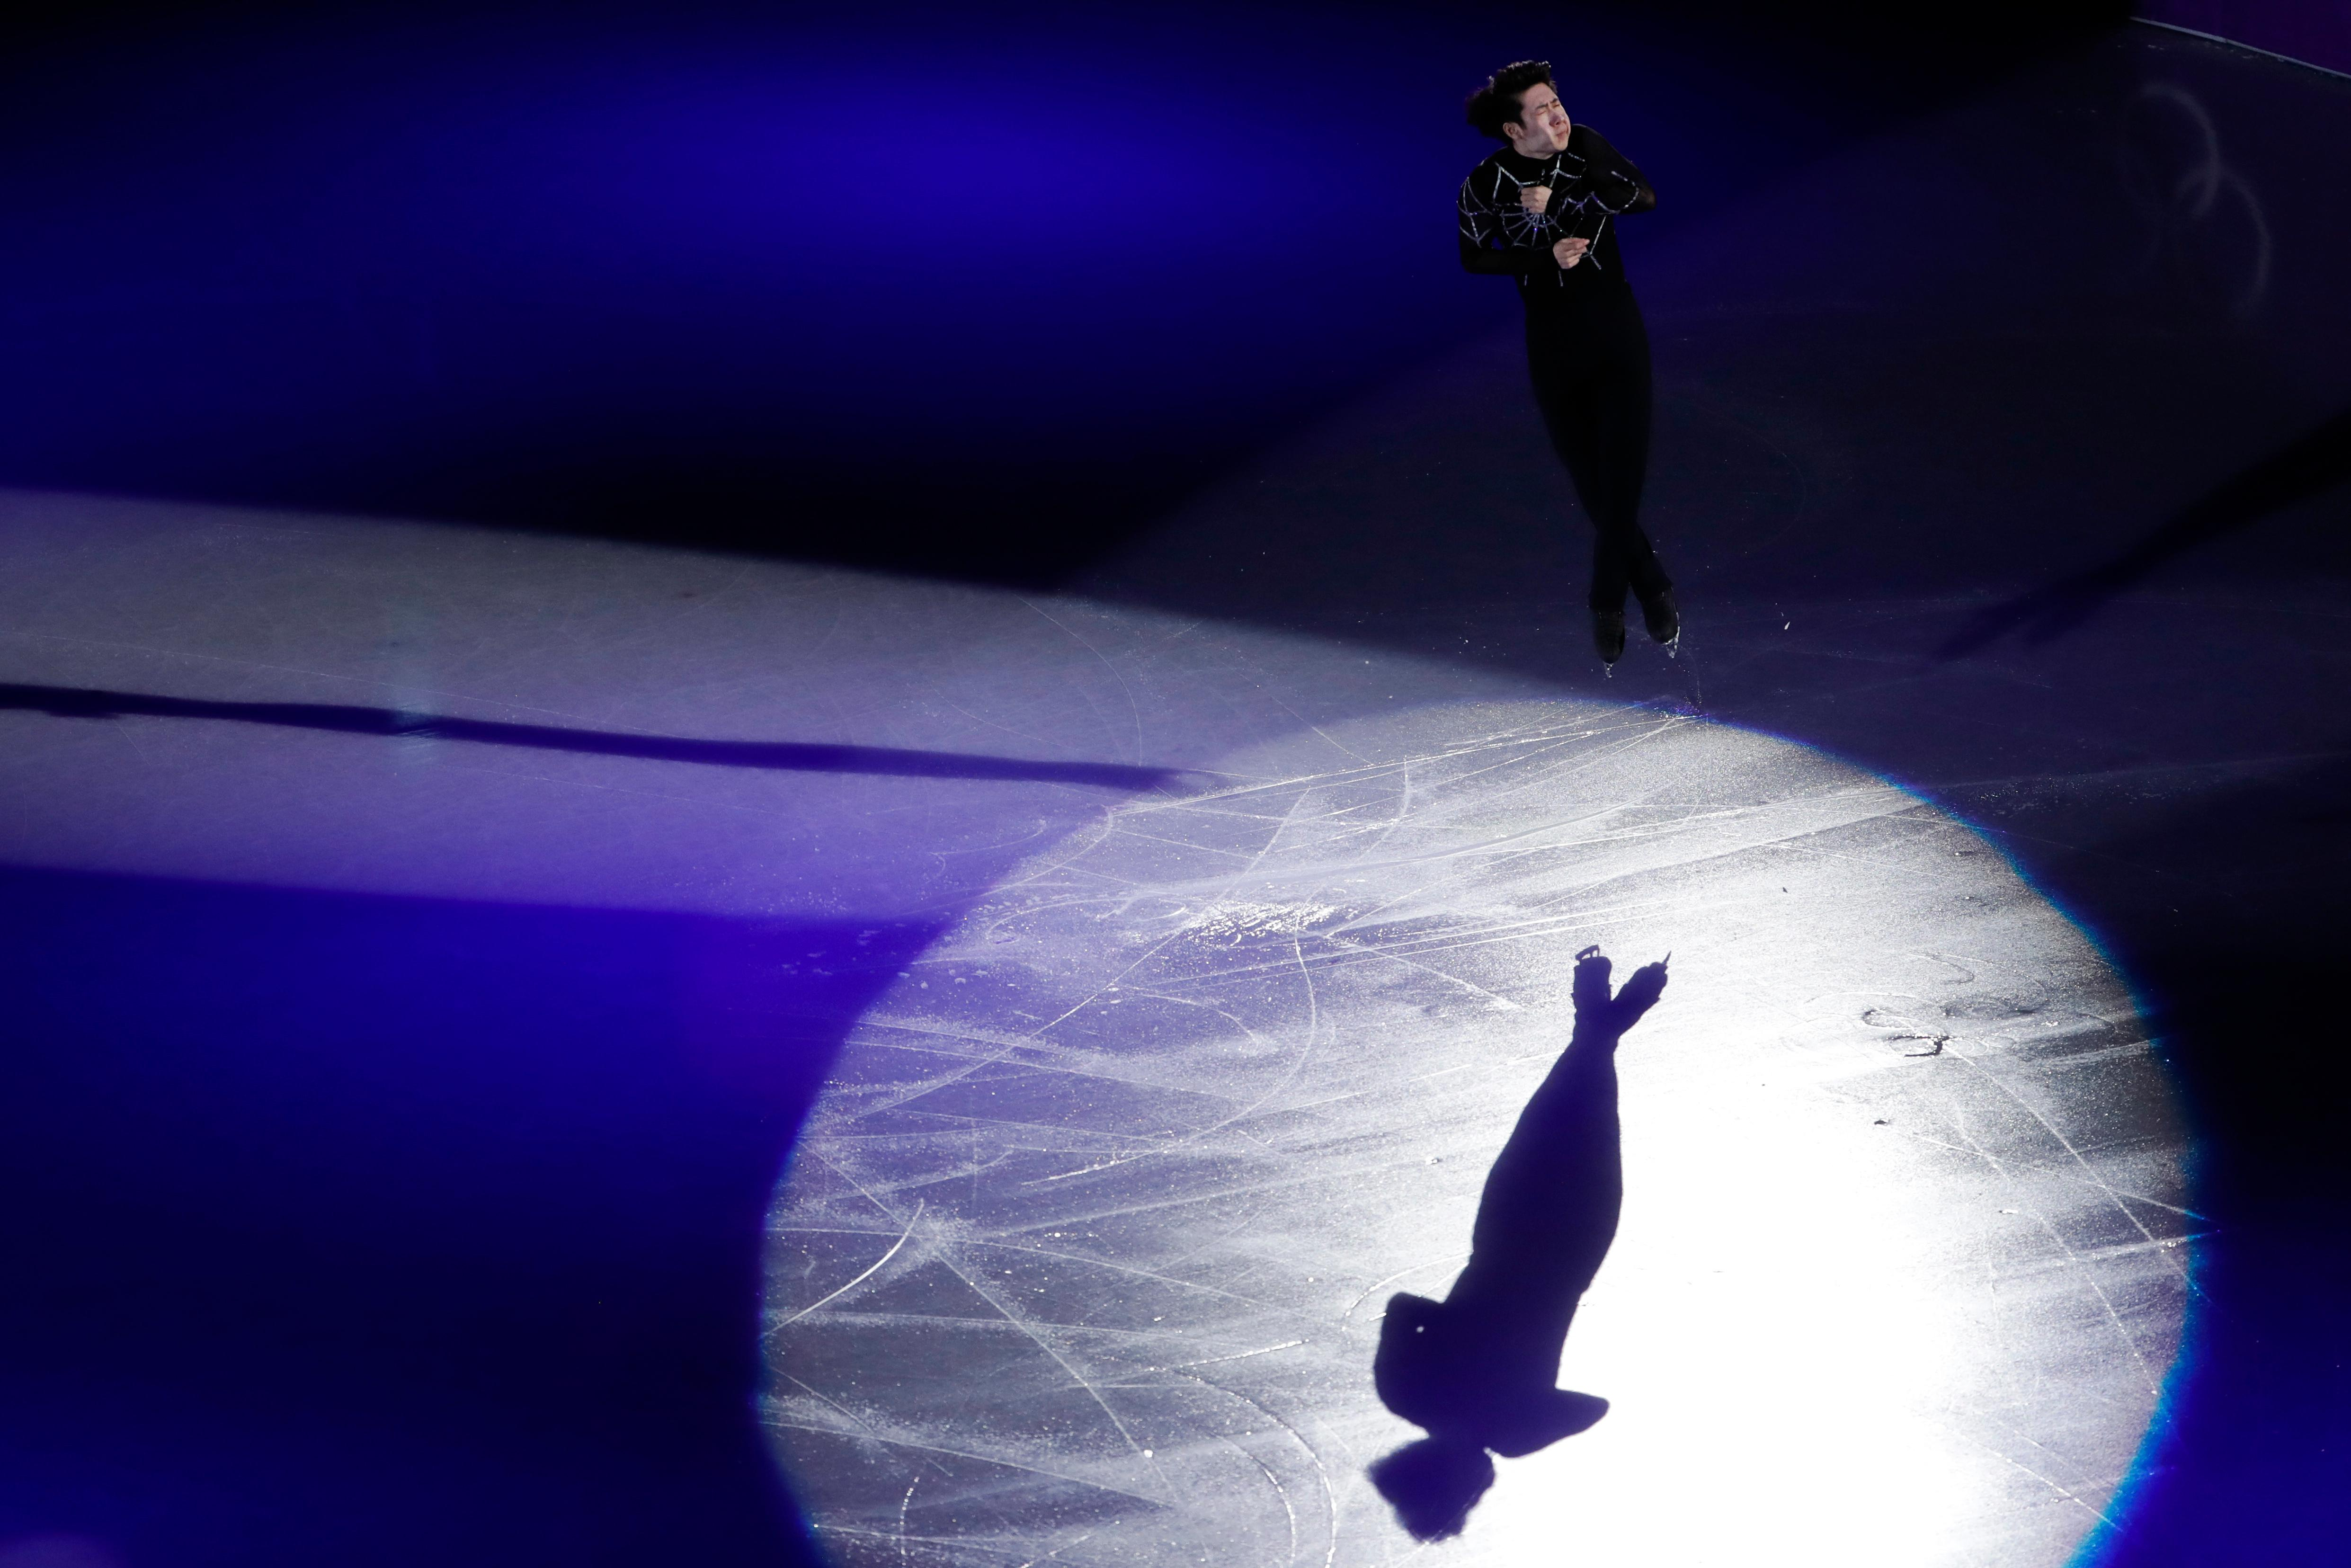 Jin Boyang, of China, performs during the figure skating exhibition gala in the Gangneung Ice Arena at the 2018 Winter Olympics in Gangneung, South Korea, Sunday, Feb. 25, 2018. (AP Photo/Felipe Dana)